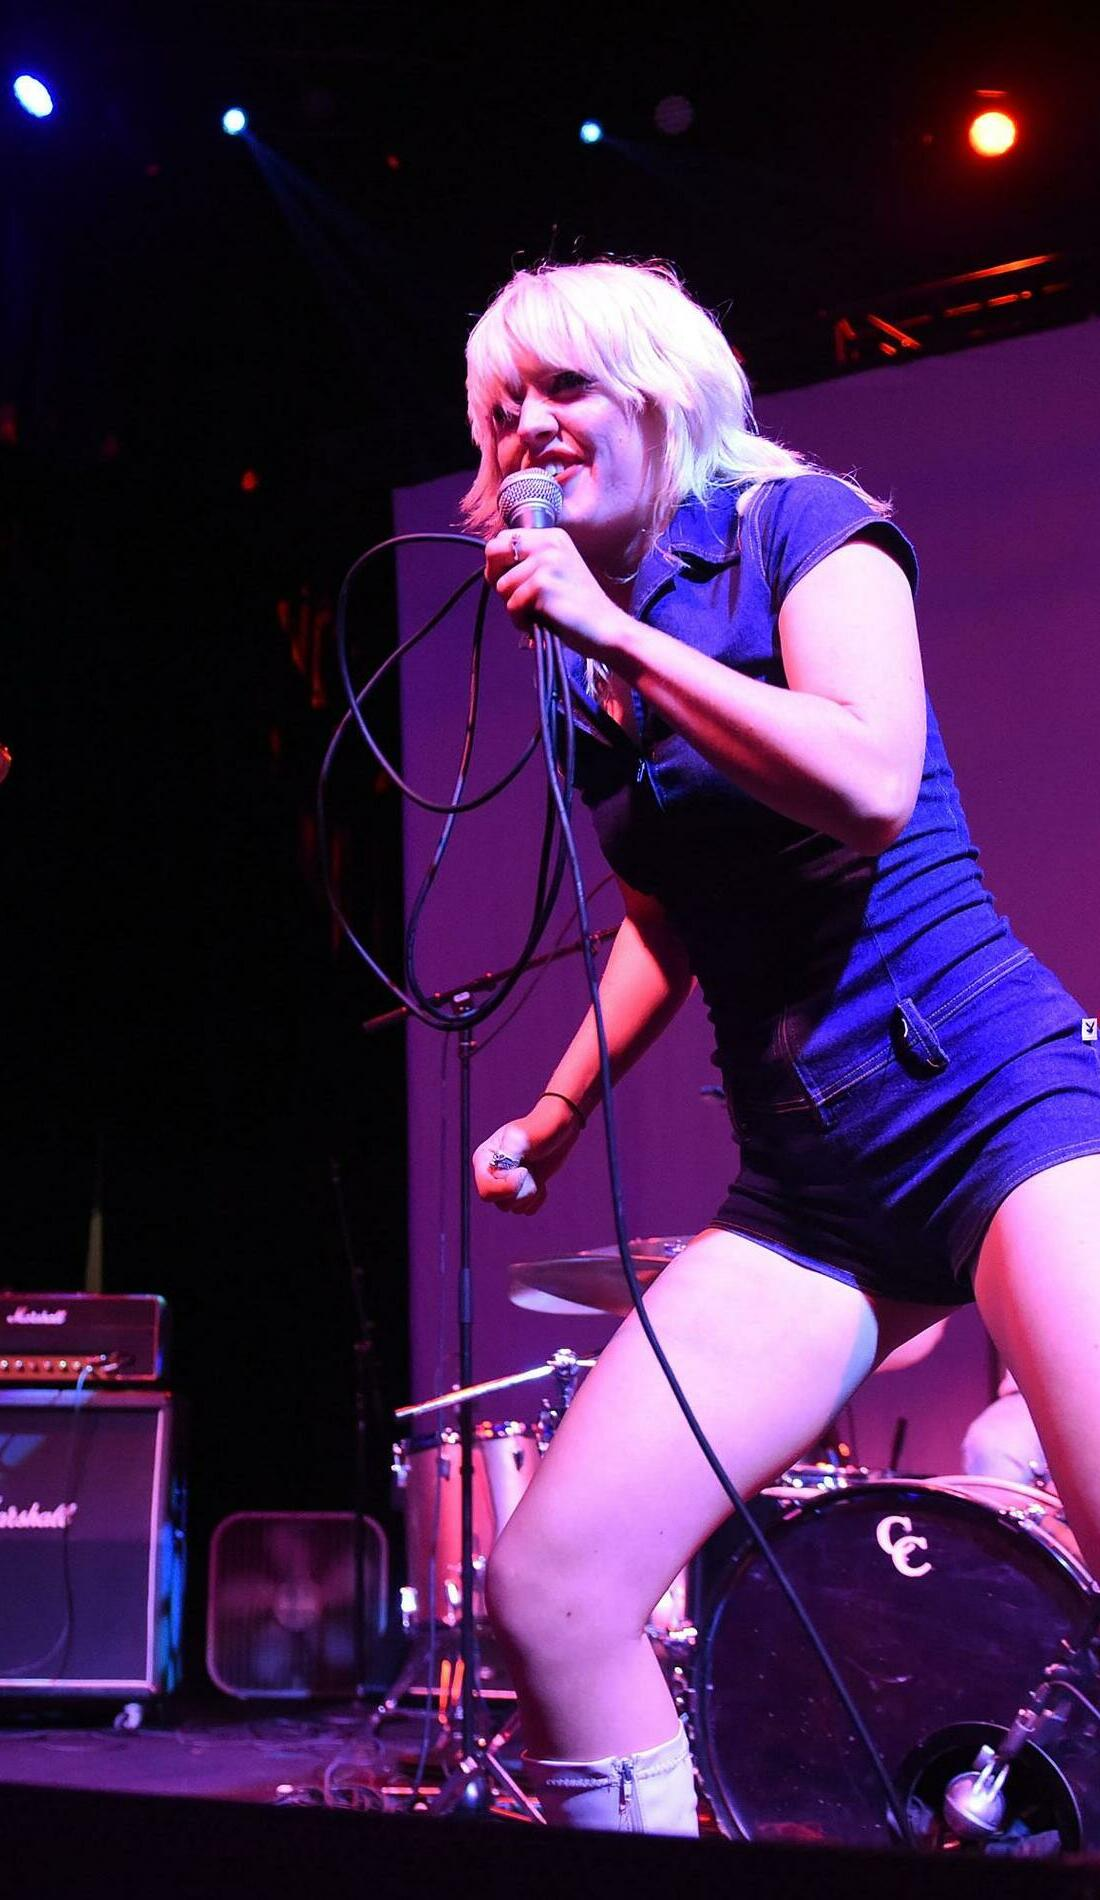 A Amyl and The Sniffers live event